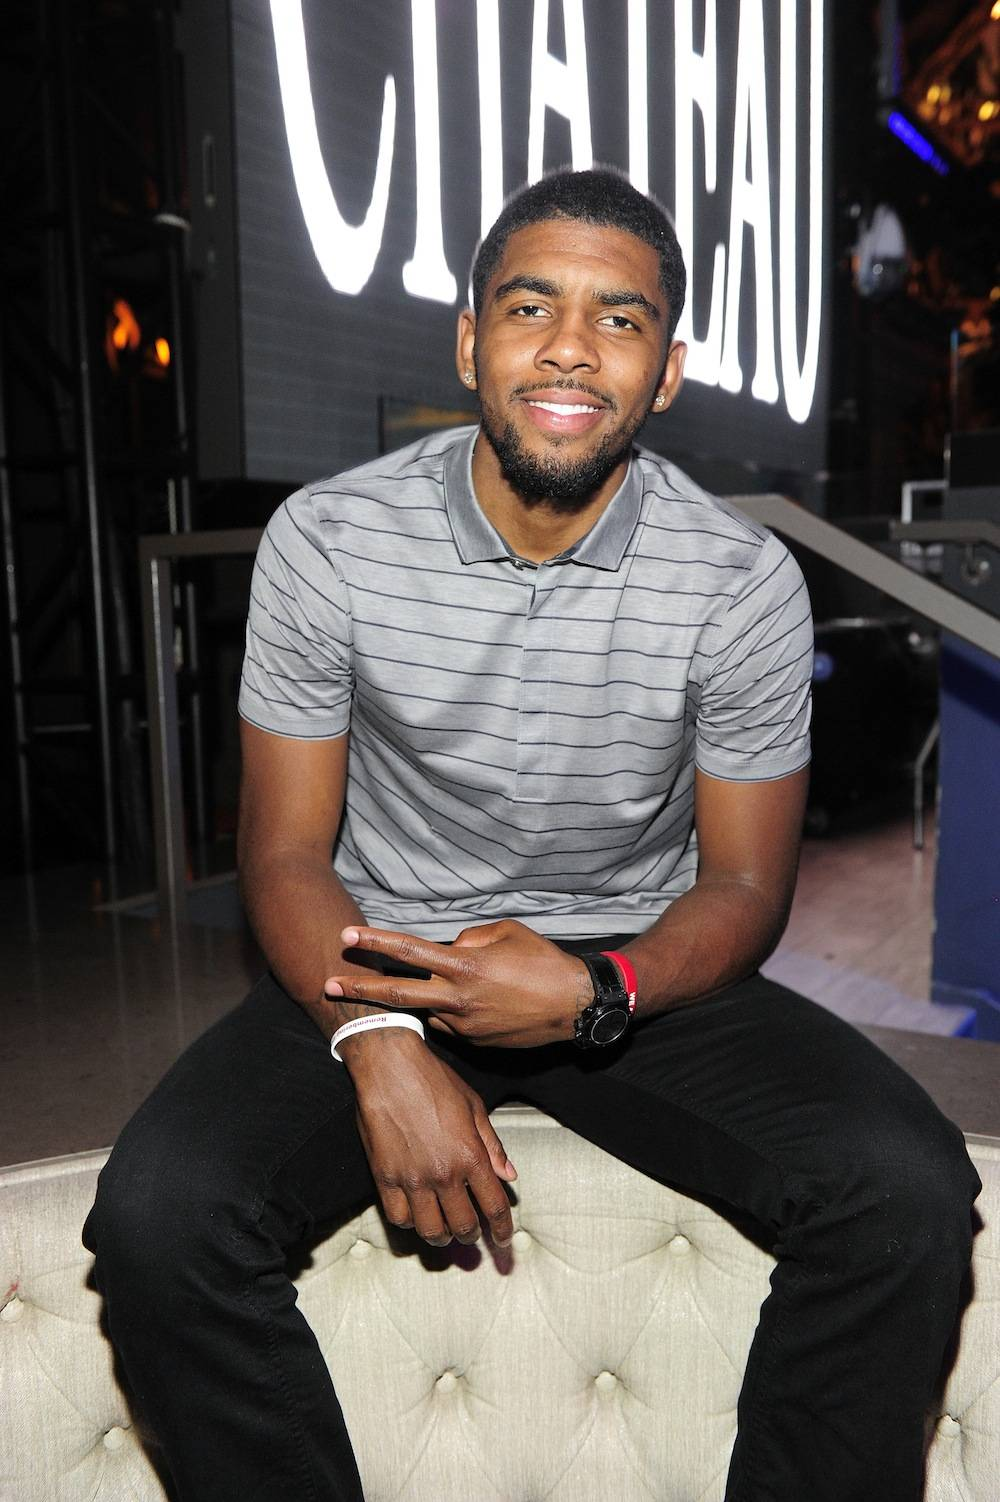 Kyrie Irving Celebrates His Birthday At Chateau Nightclub & Gardens At Paris Las Vegas